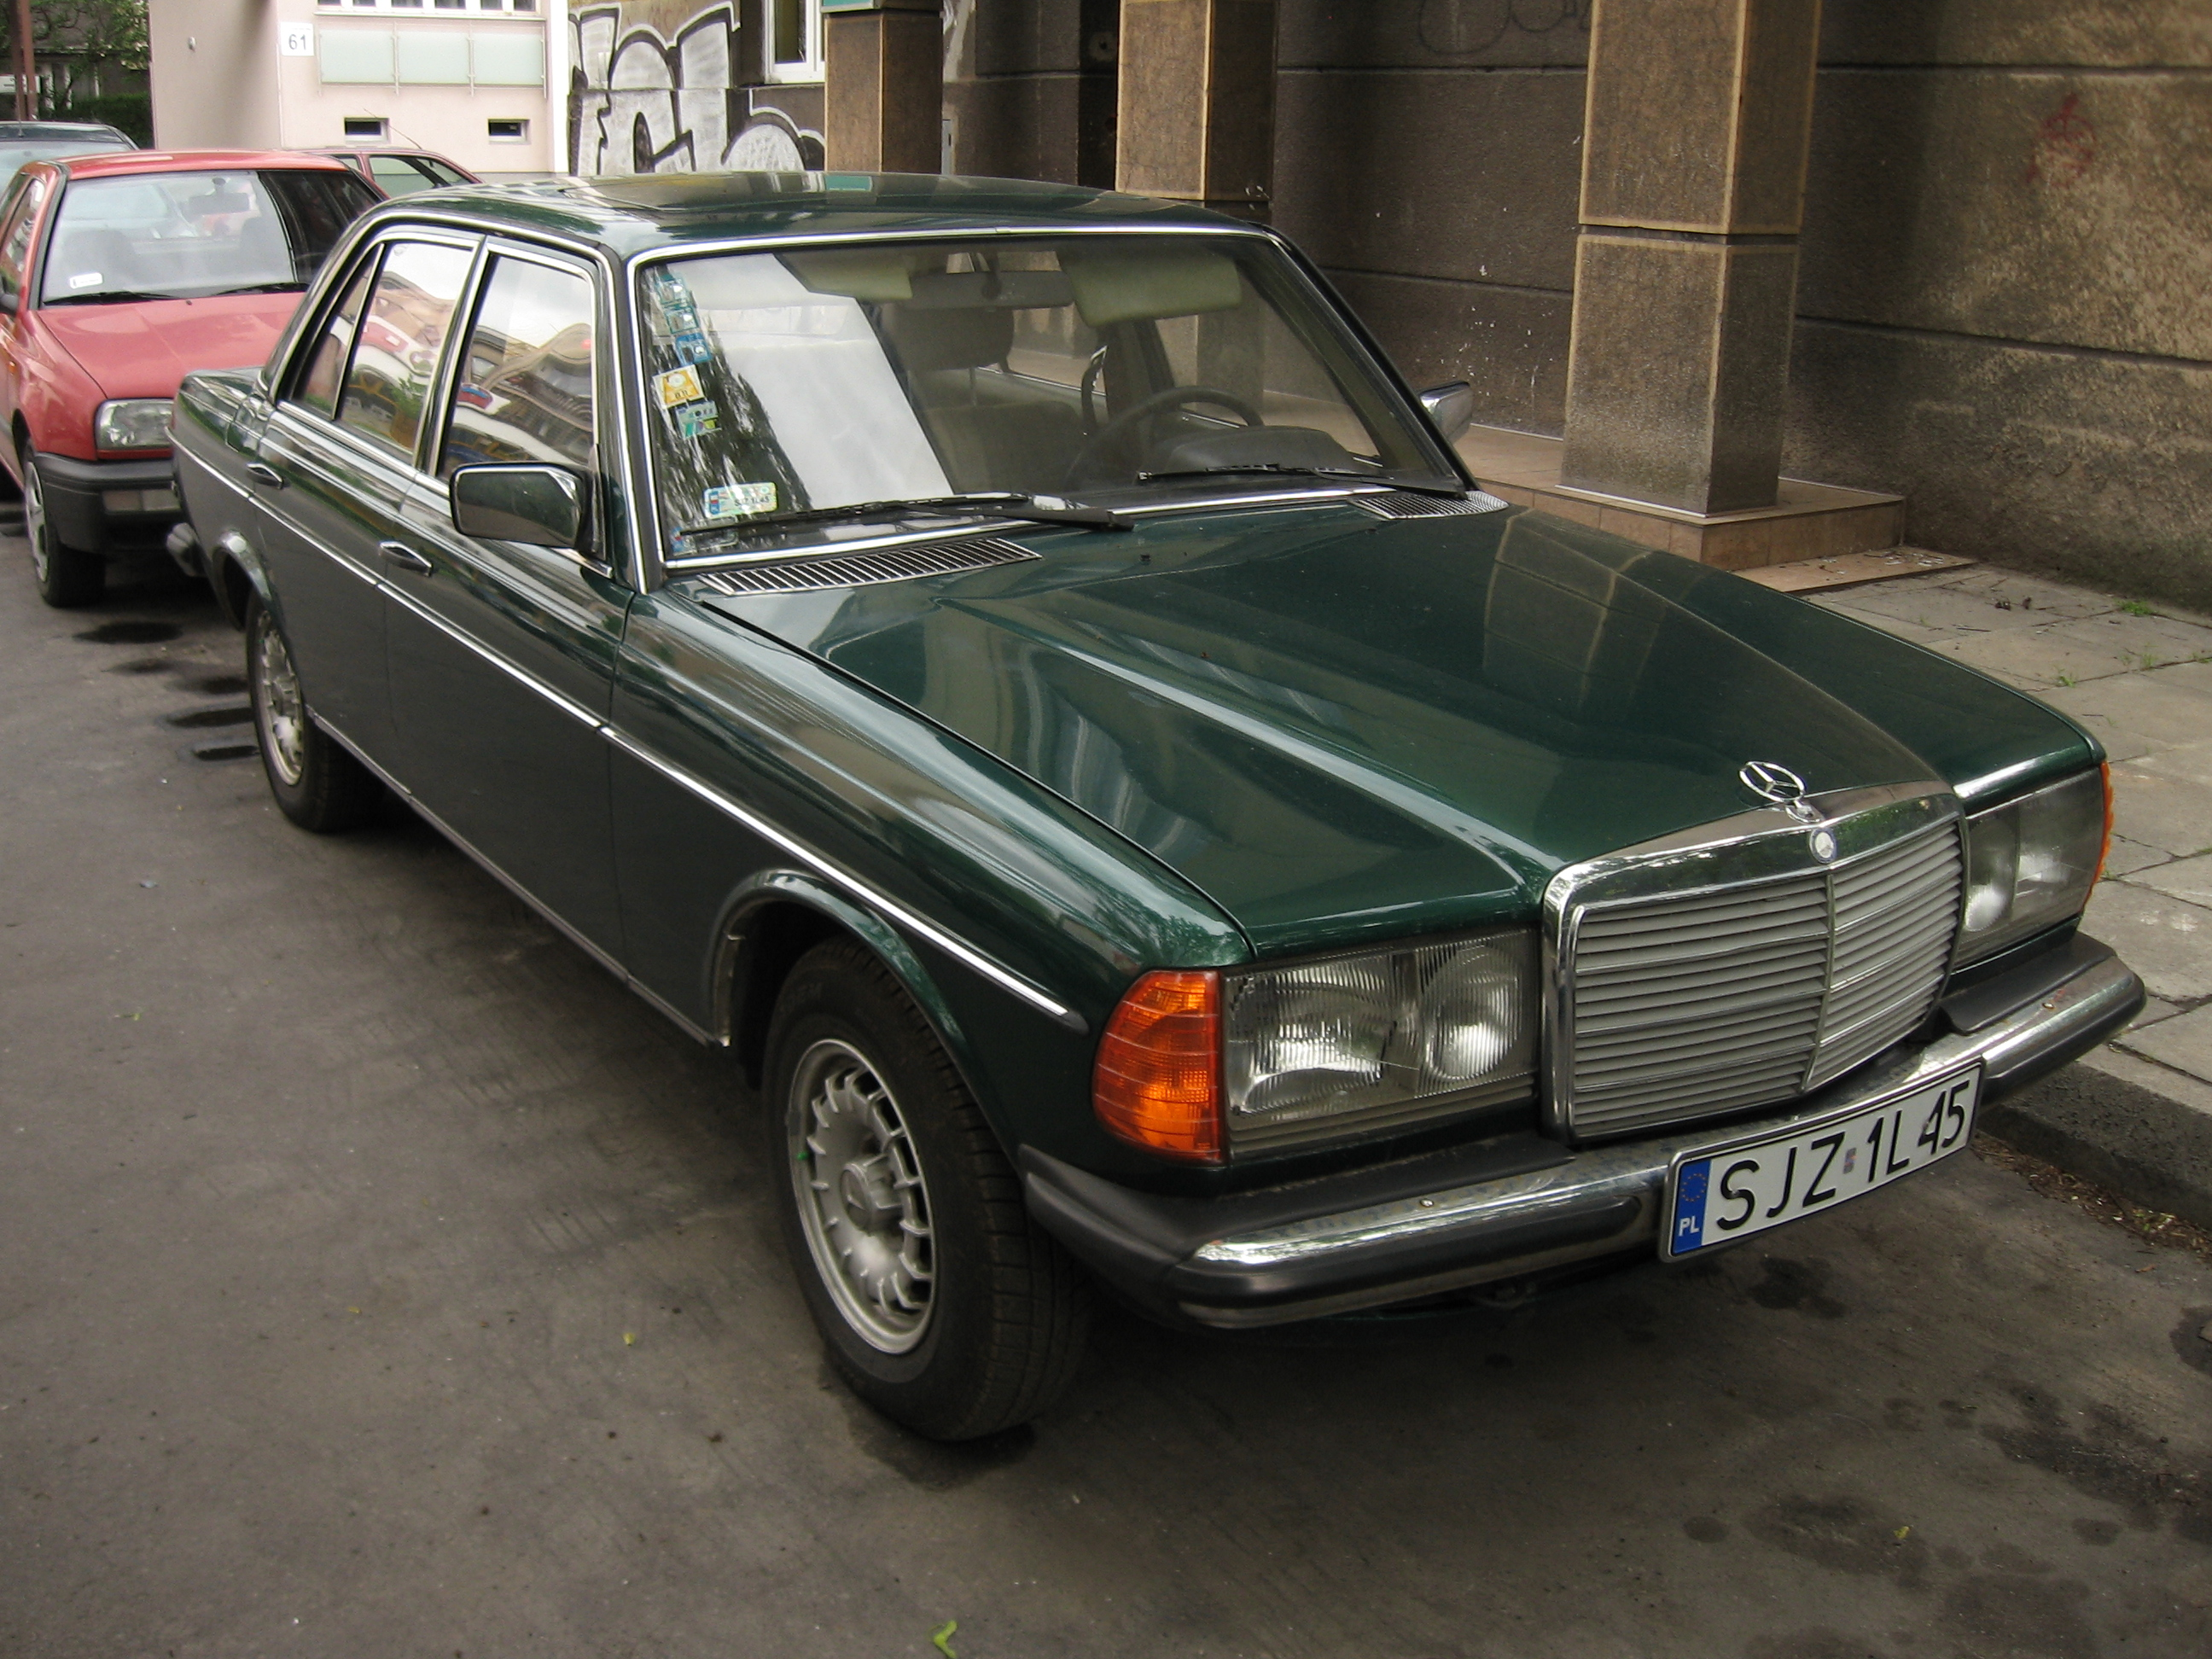 file green mercedes benz w123 in krak wikimedia